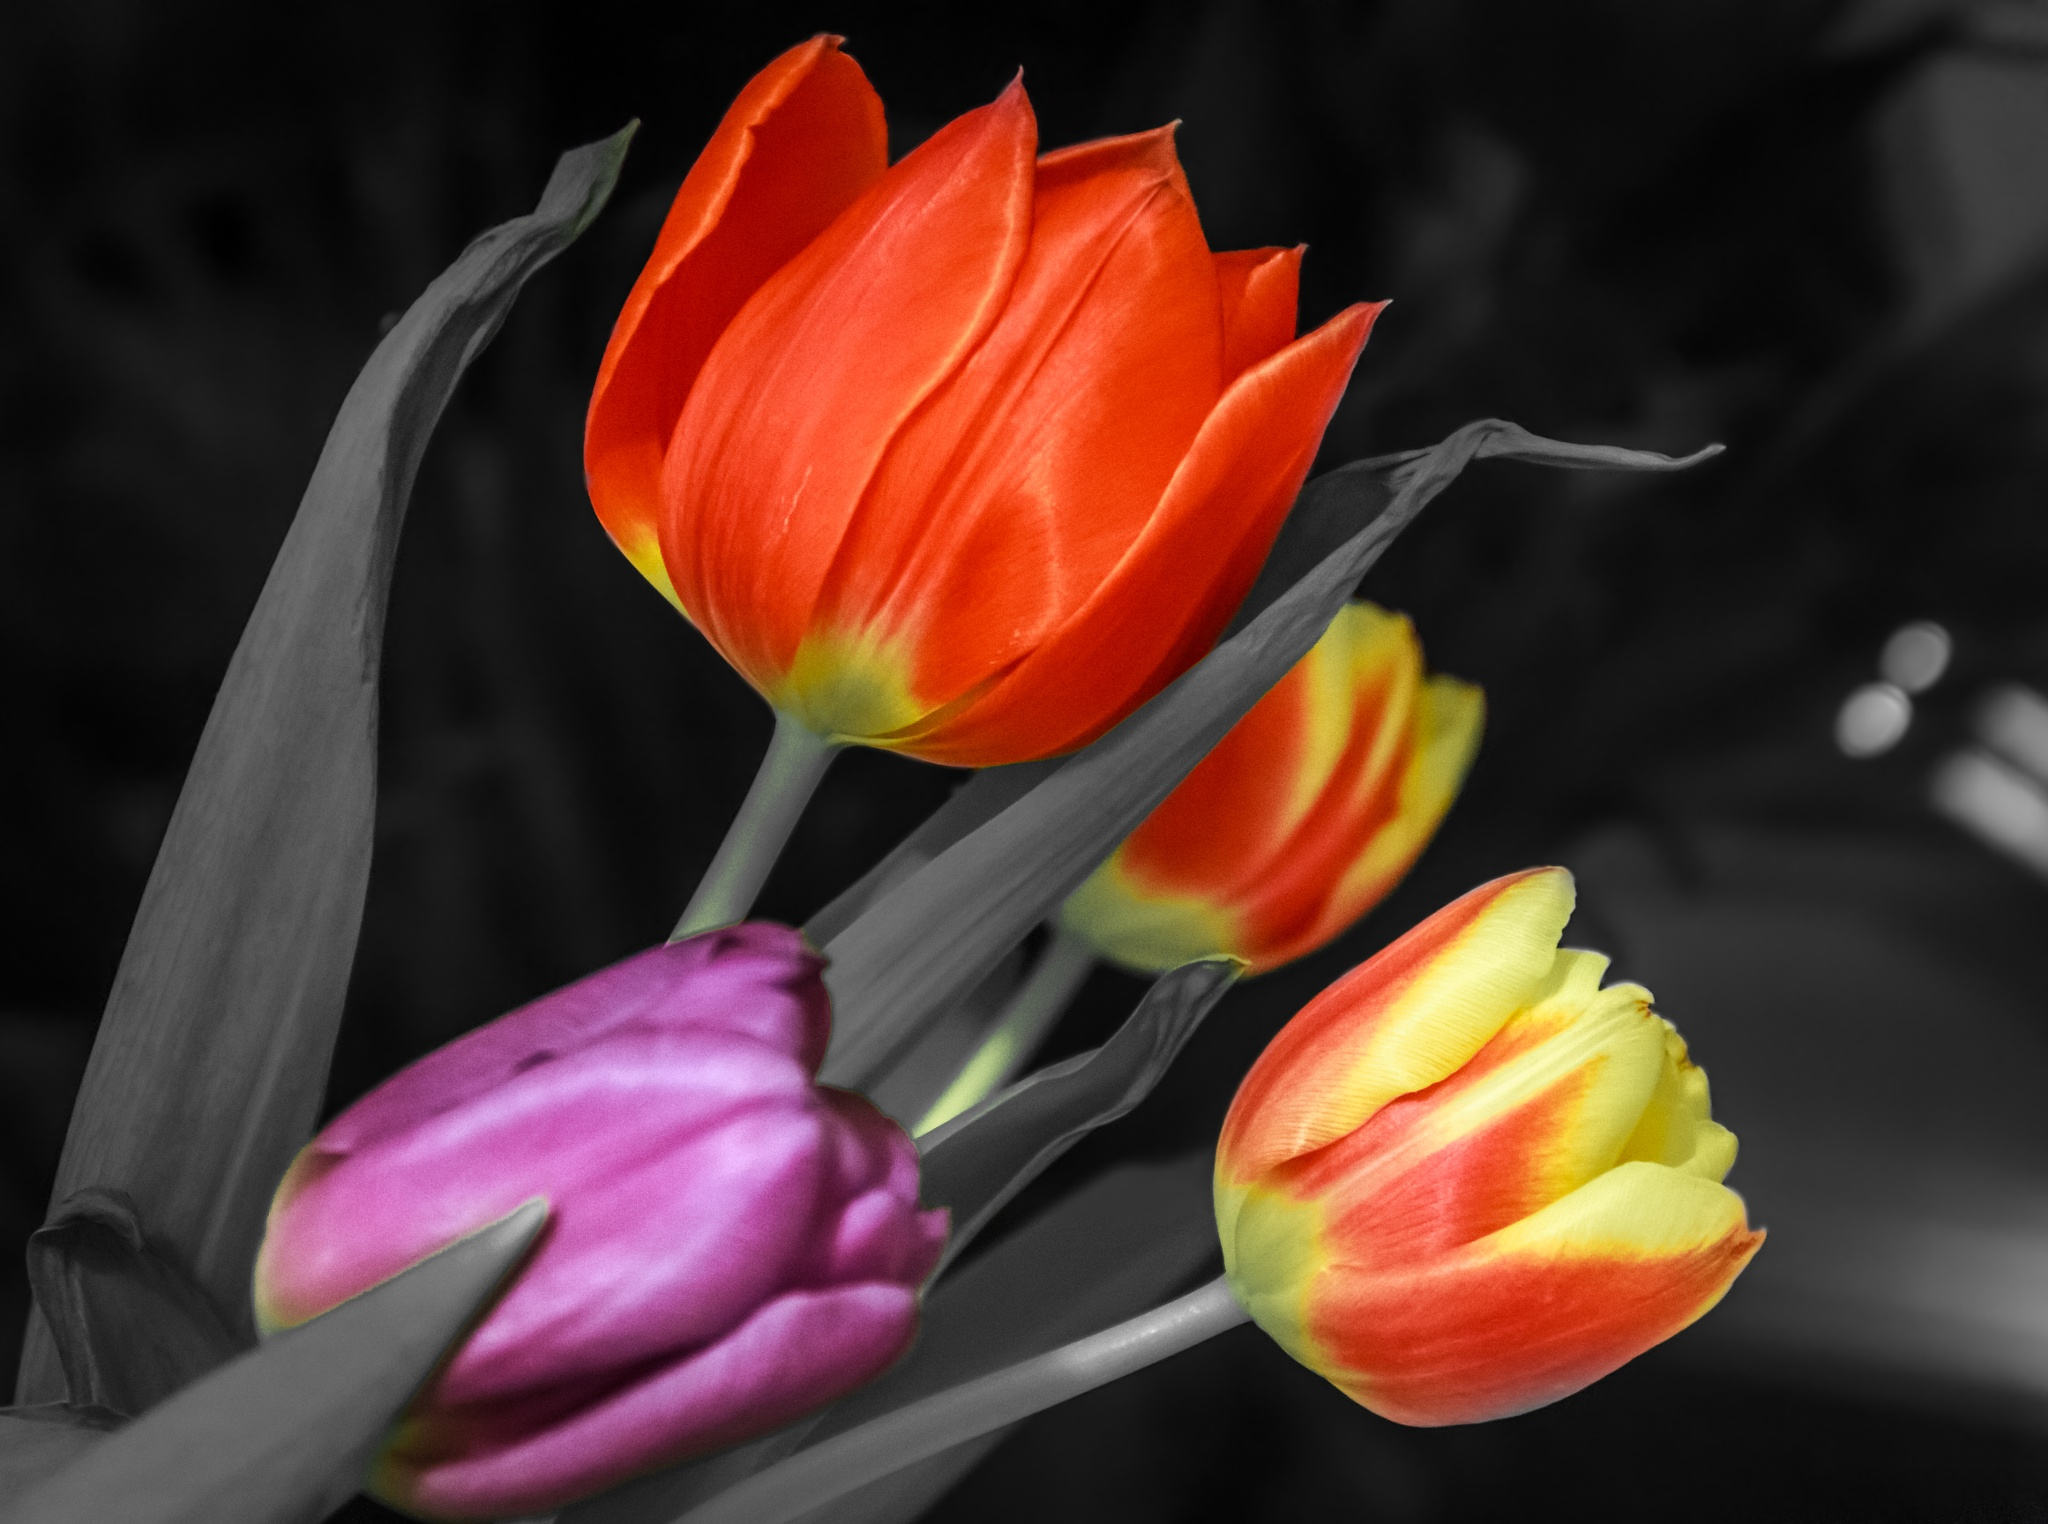 Tulips by Fabio Rodrigues